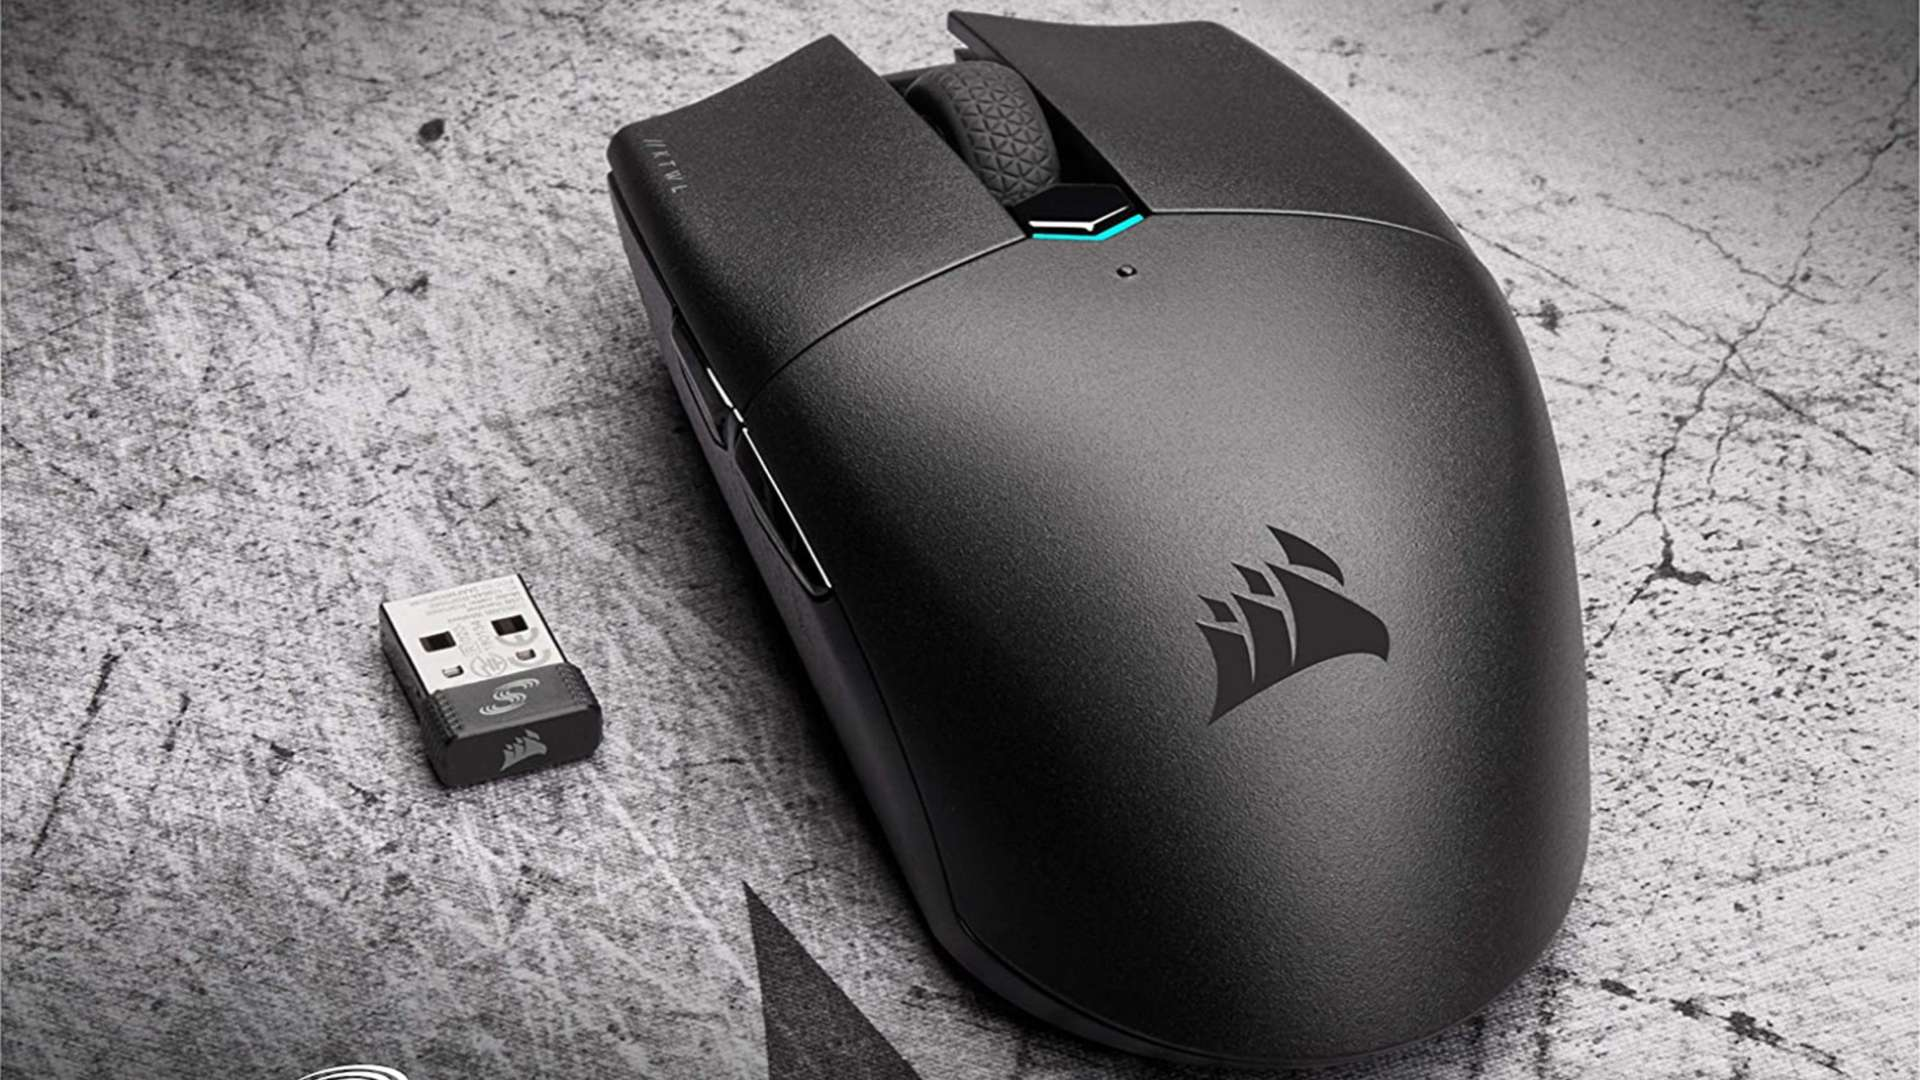 Forget Amazon Prime Day, Corsair's wireless gaming mouse is under $30